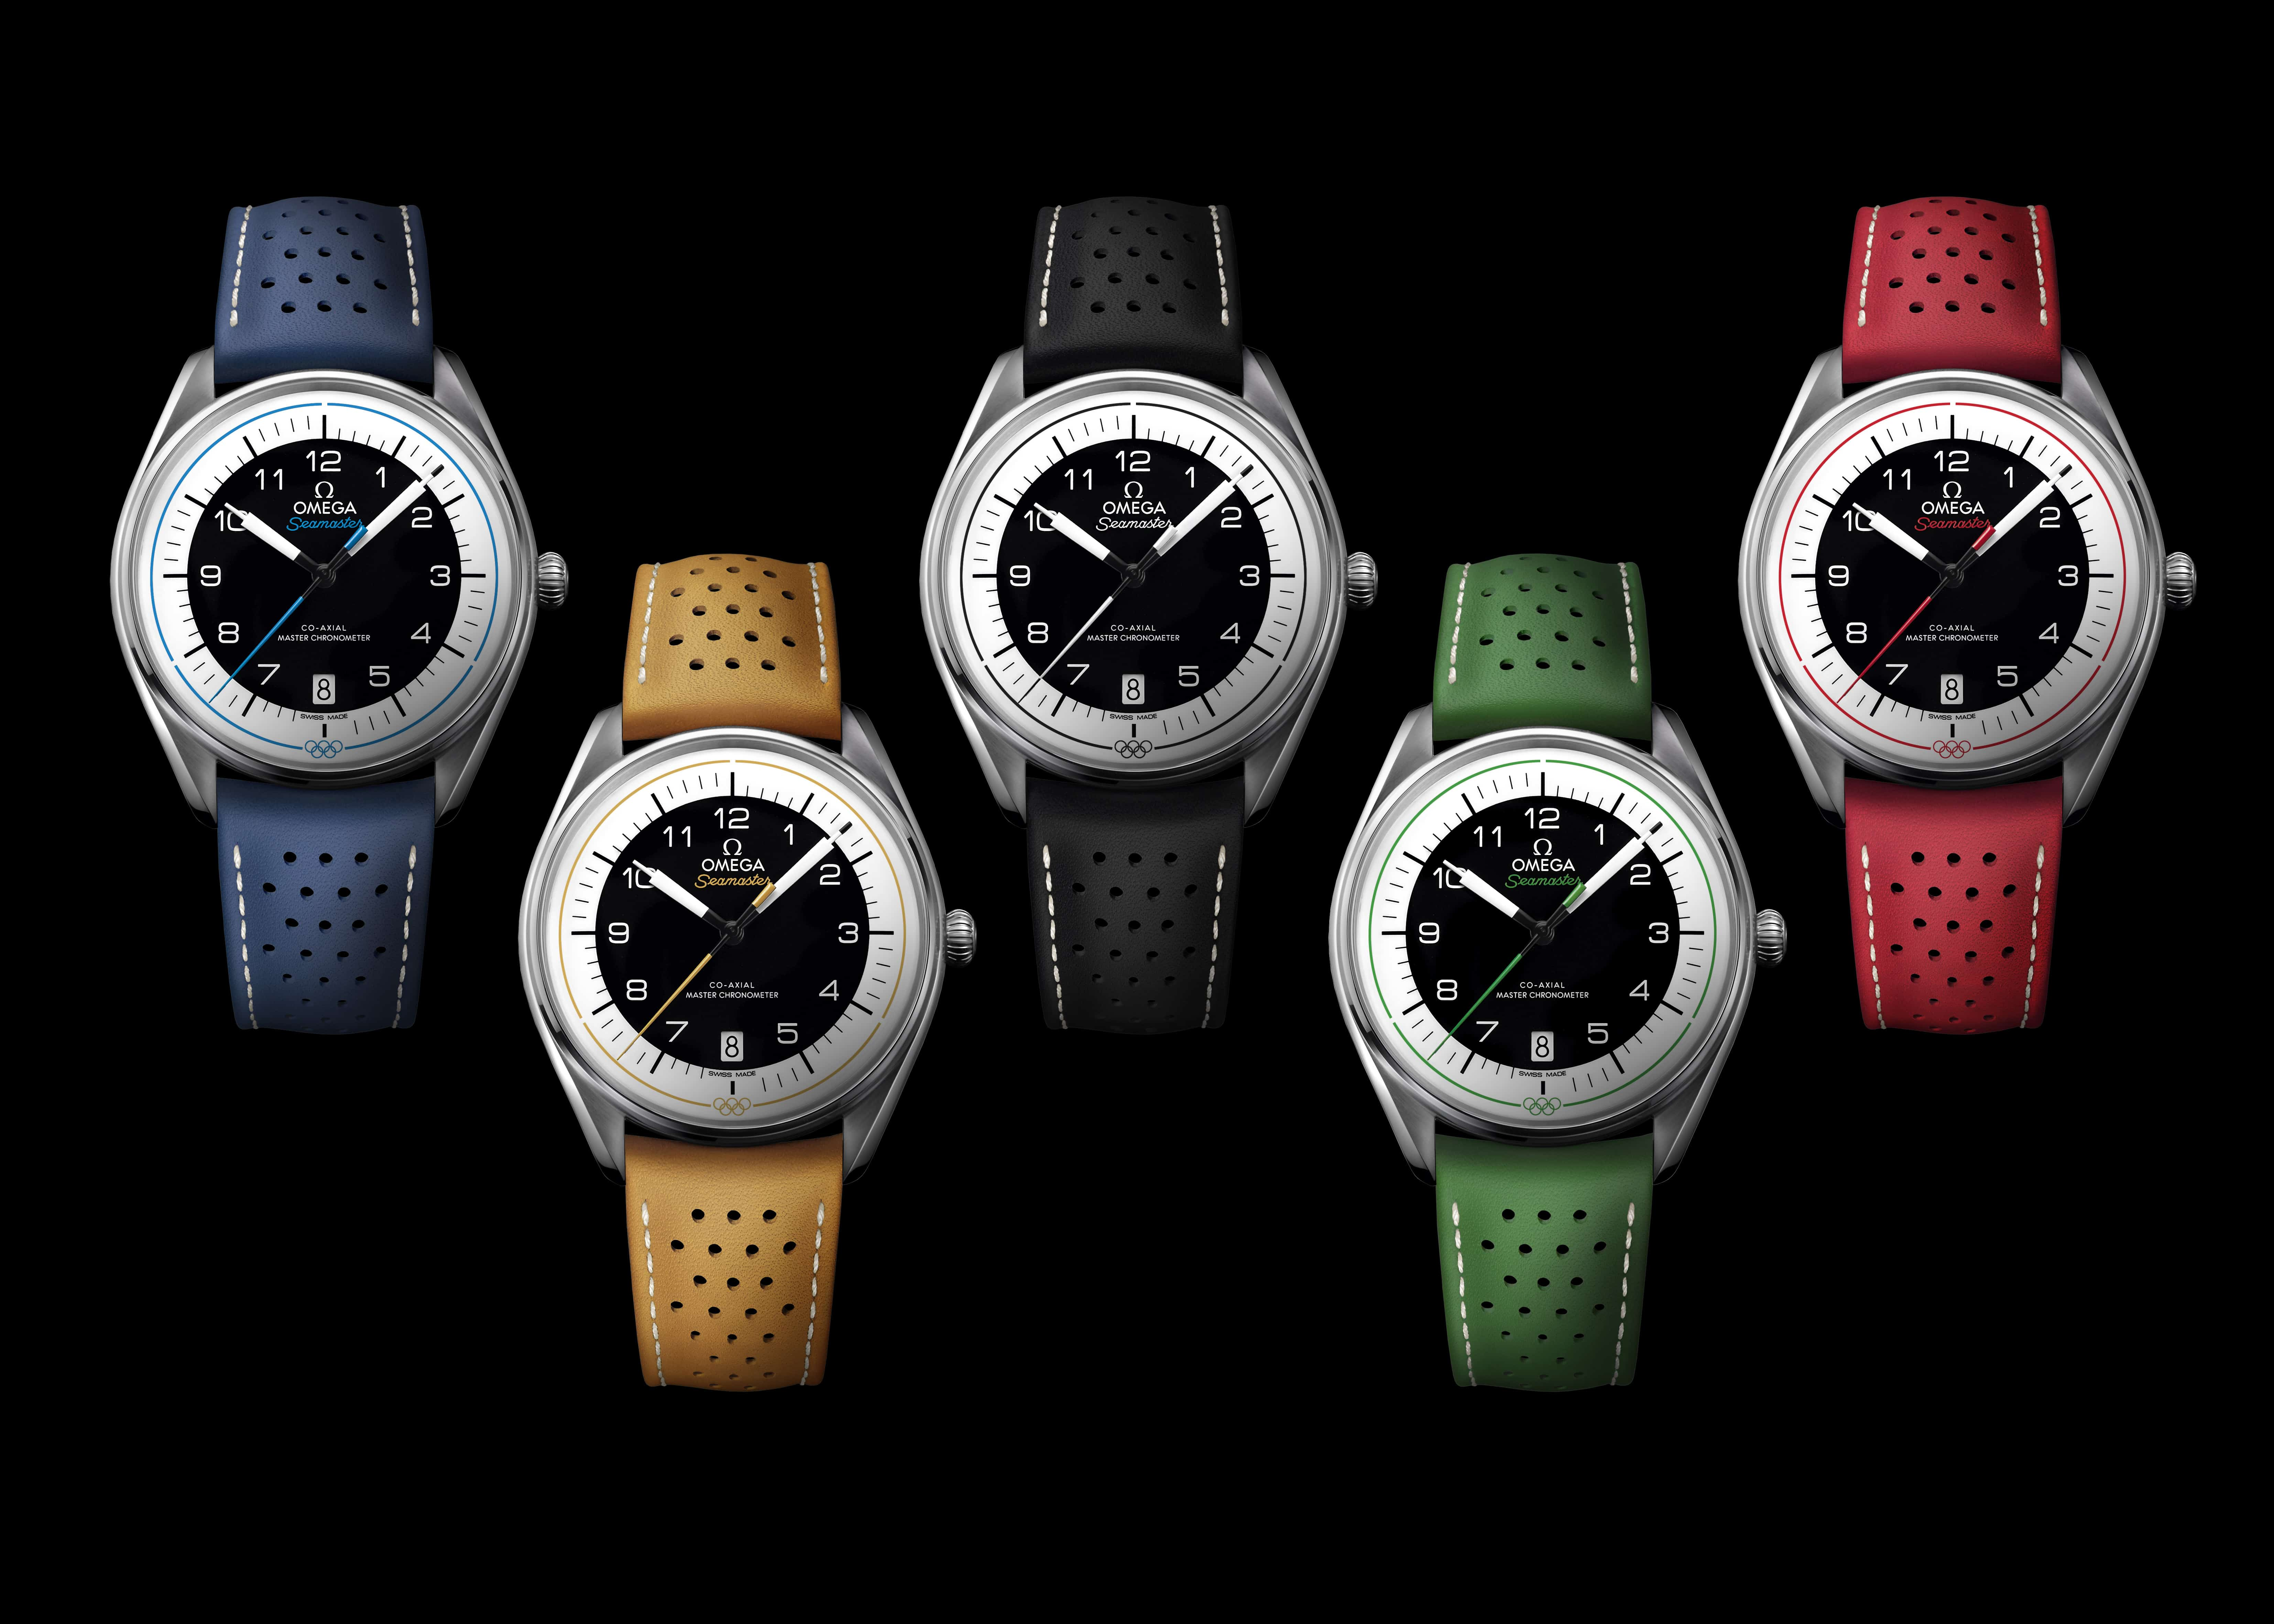 EcoLux☆Lifestyle: Omega: Official Timekeeper of the Olympic Games